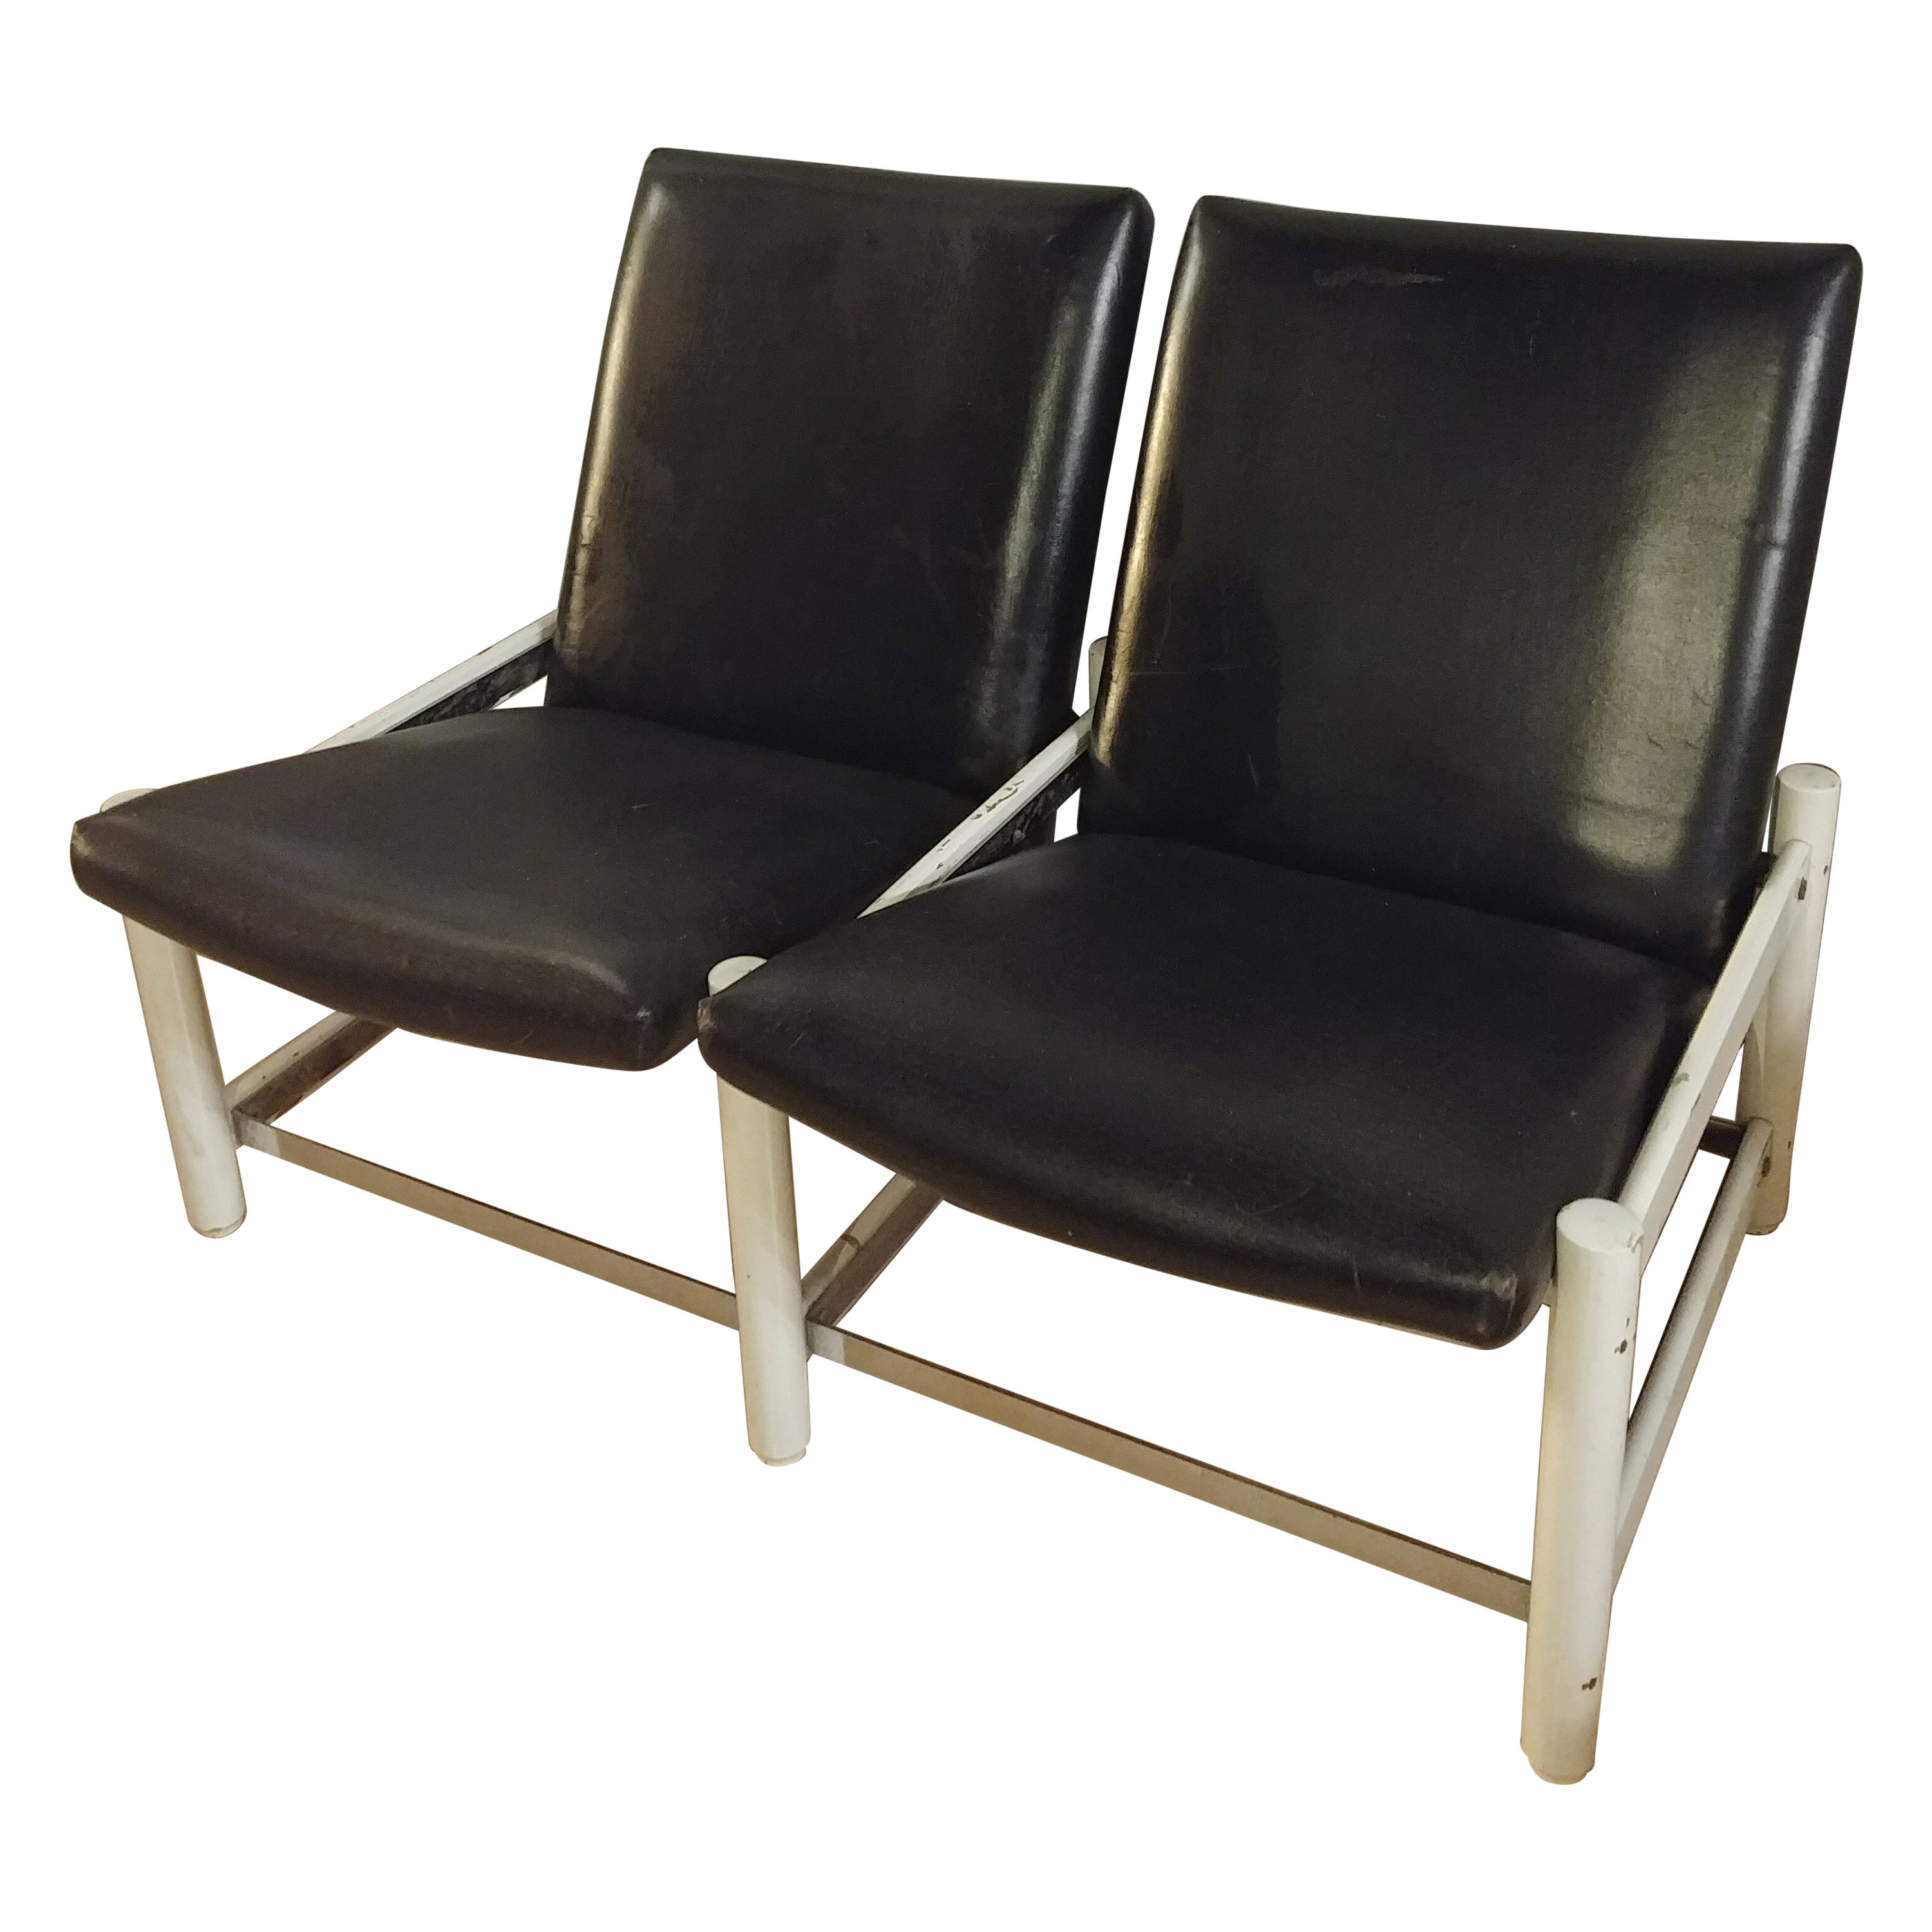 Midcentury Sofa in Black Leather by Dal Vera at 2-Seat, Italy, 1950s